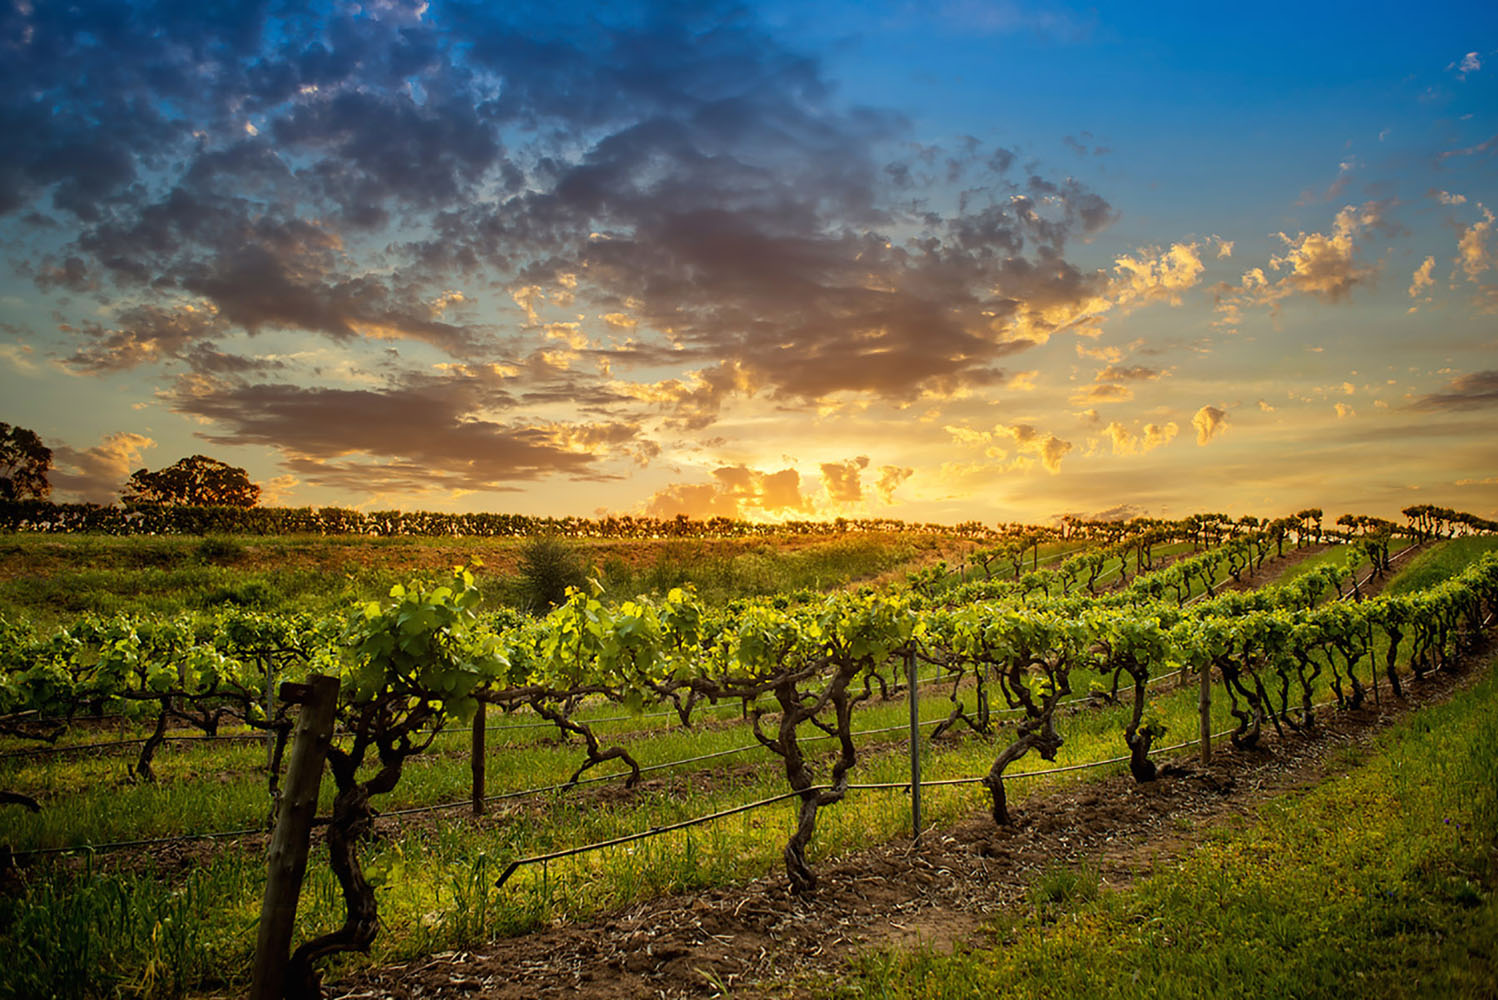 Sunset in an Australian vineyard.